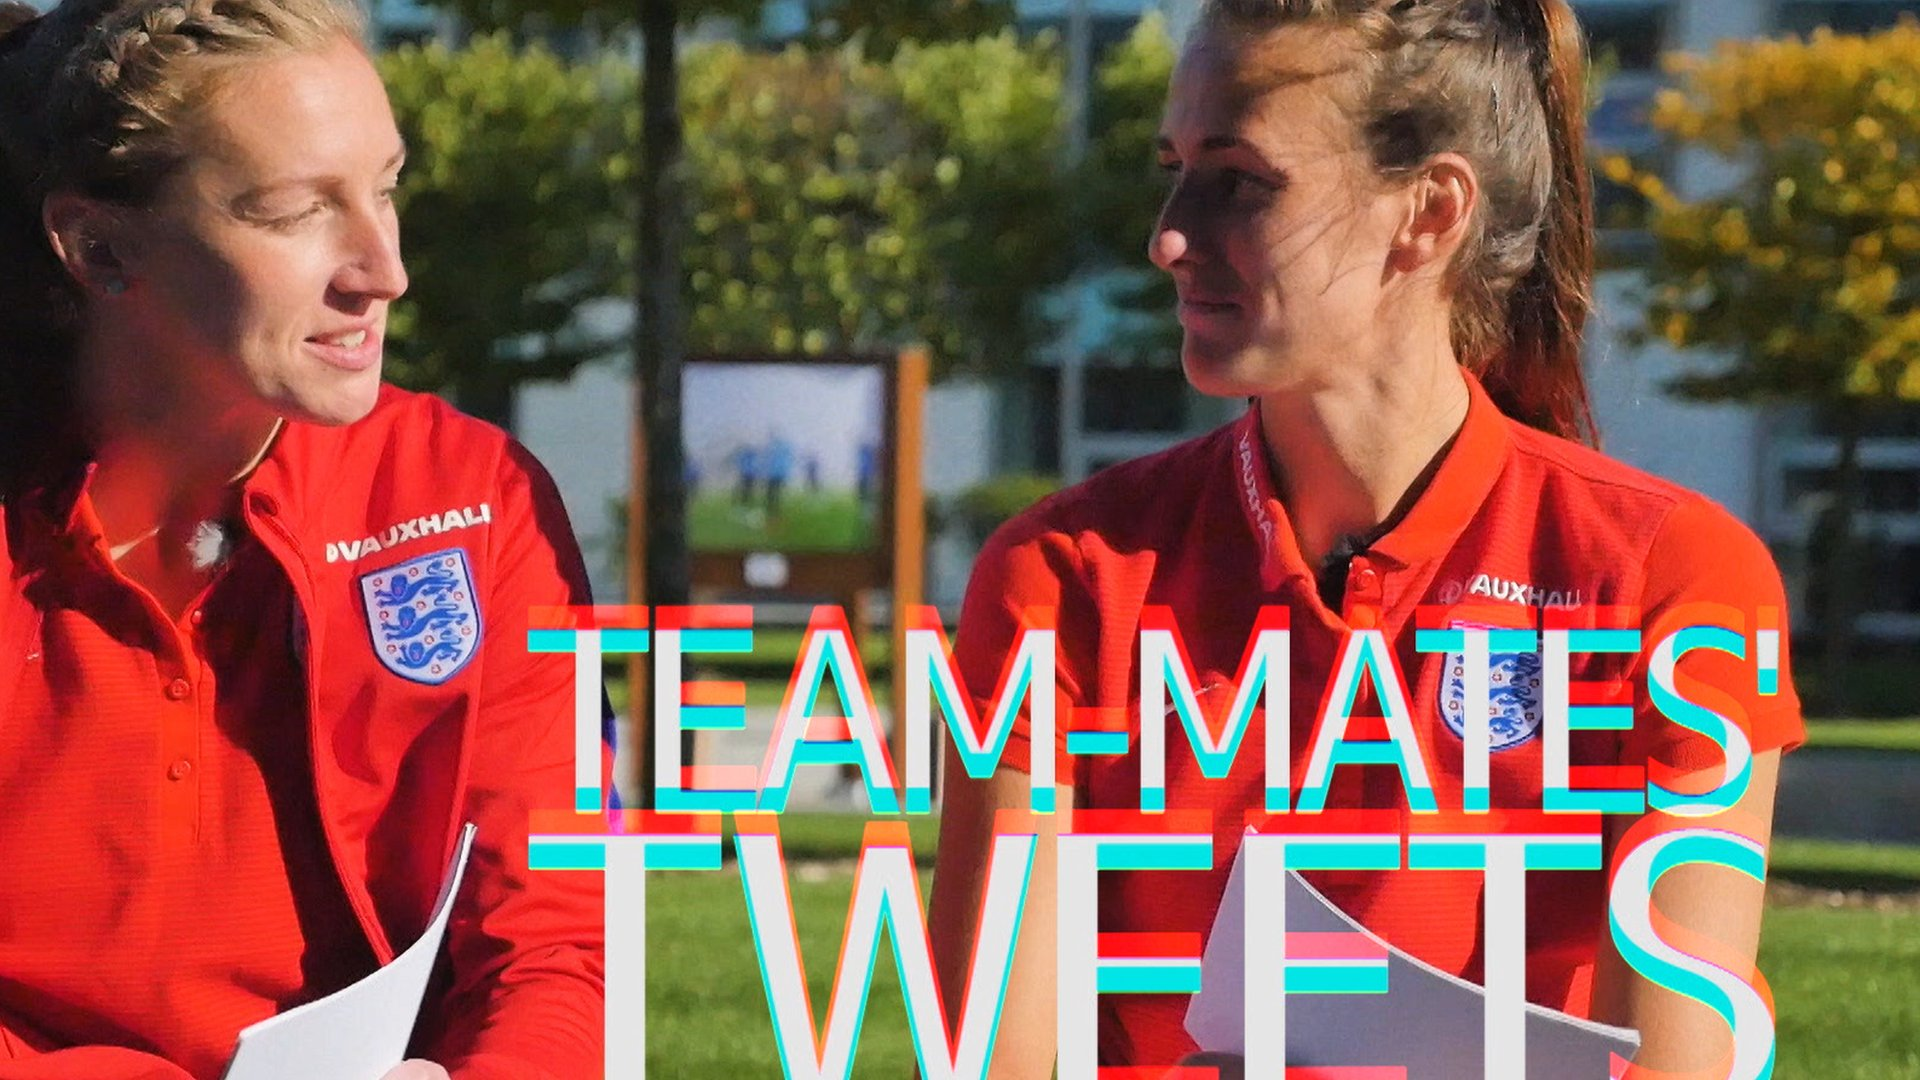 Team-mates tweets: Rainbows, maps and chocolate libraries from England women's team